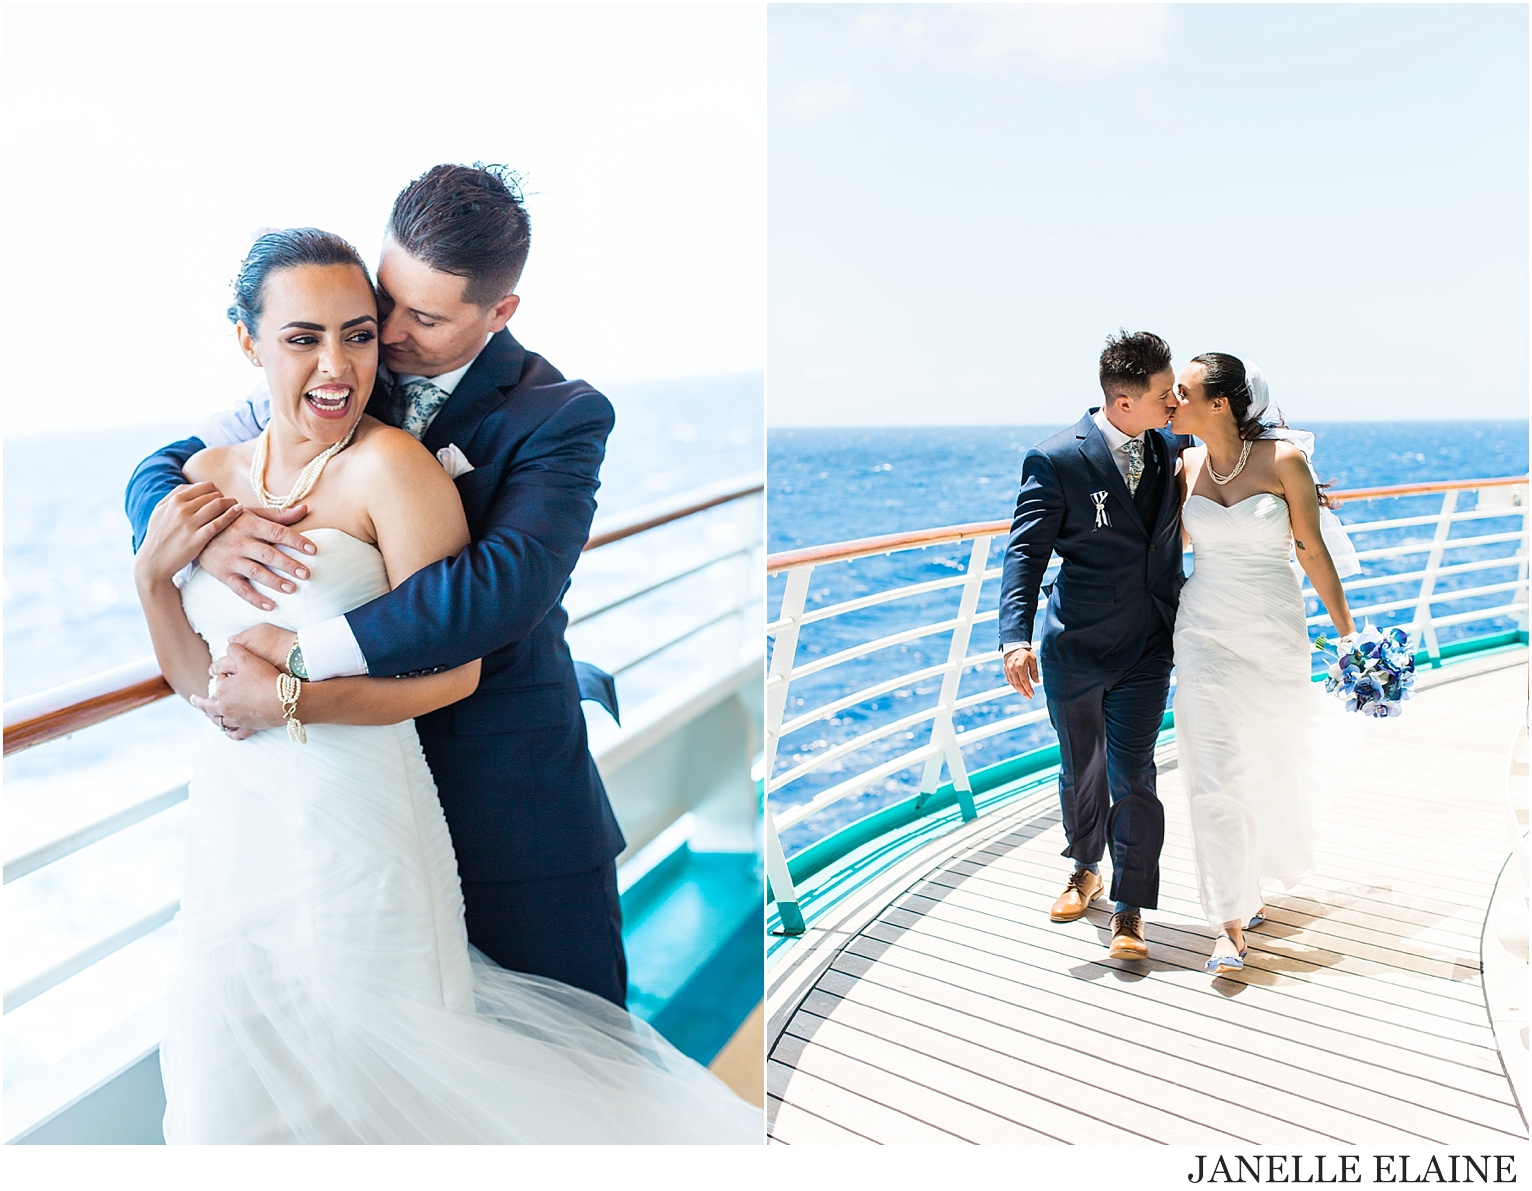 white wedding-royal caribbean-janelle elaine photography-229.jpg